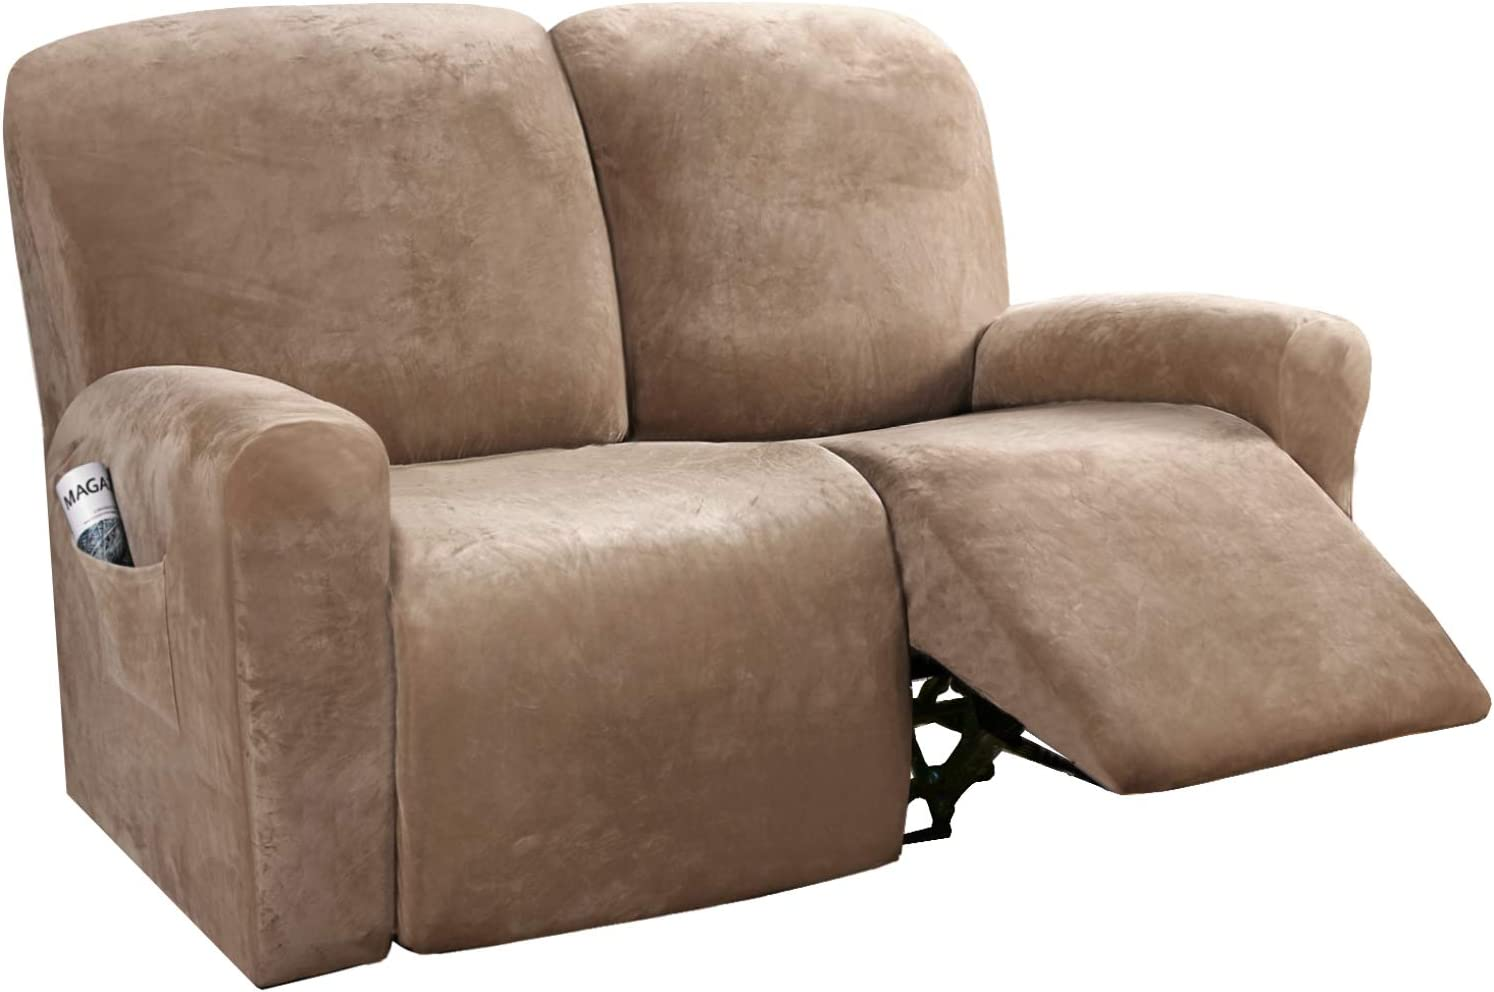 H.VERSAILTEX 6-Pieces Recliner Loveseat Covers Velvet Stretch Reclining Couch Covers for 2 Cushion Sofa Slipcovers Furniture Covers Form Fit Customized Style Thick Soft Washable(Medium, Camel)